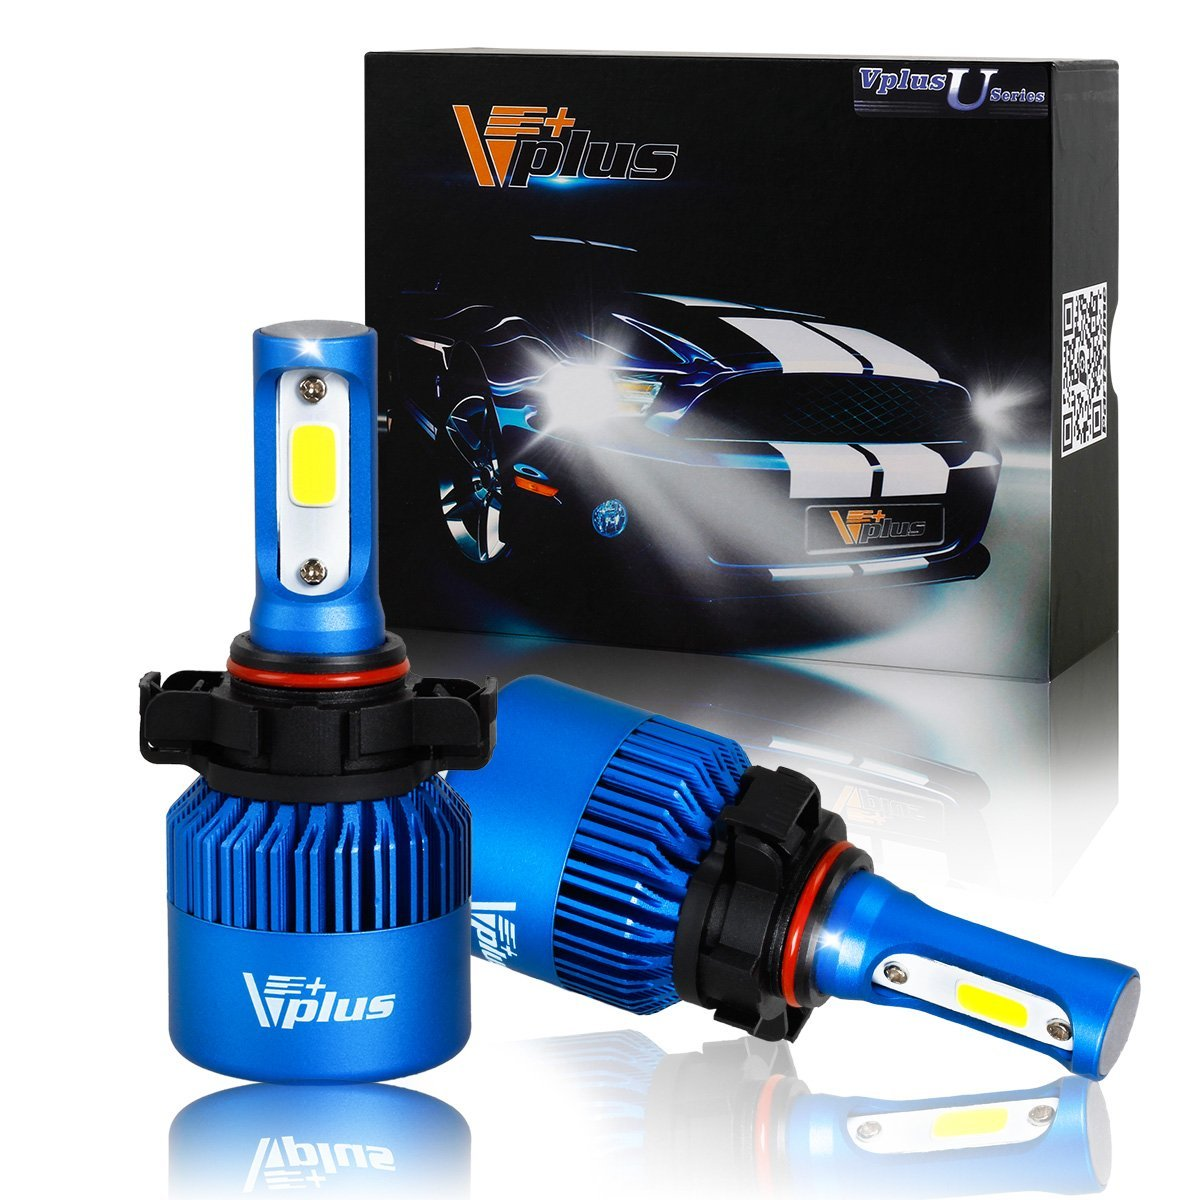 Vplus U Series LED Headlight Bulbs w/ Clear Focused Beam Kit - PSX24W 2504 12276 80W 8,000LM 6500K White COB w/ Fan LED Headlamp Conversion Replace HID & Halogen - 1 Yr Warranty - (2pcs/set)